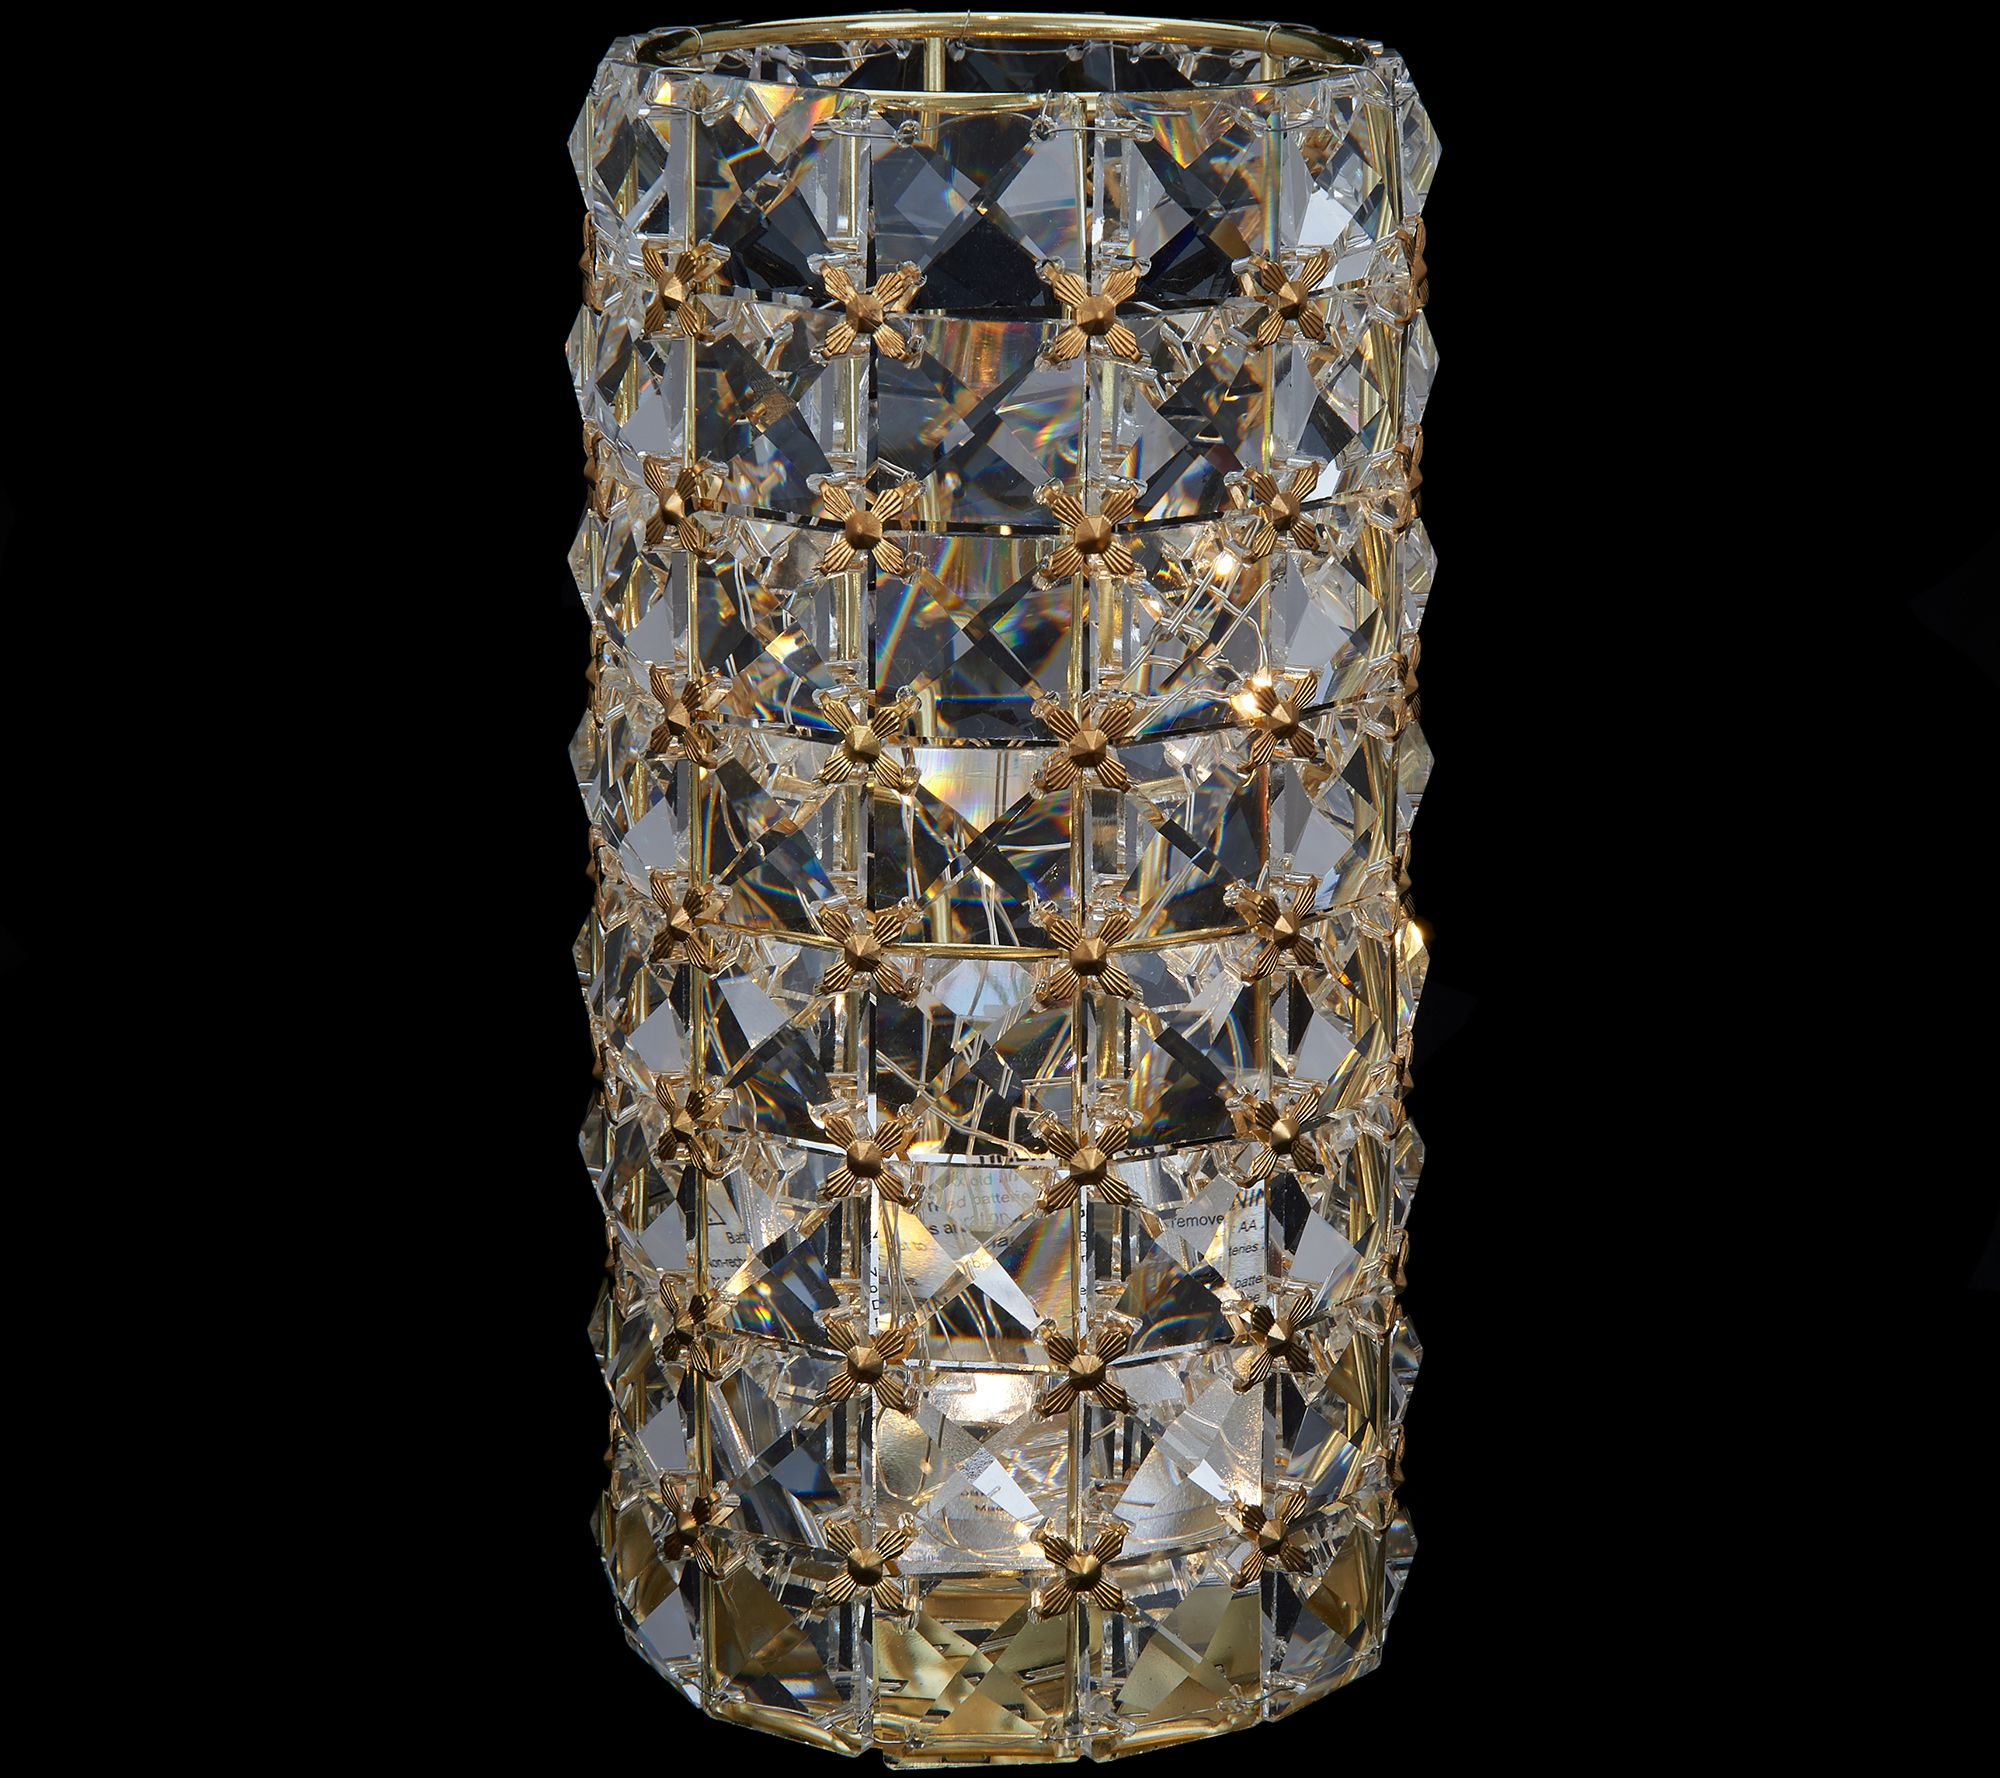 Illuminated Faceted Gem Hurricane with Microlights by Valerie Gold and Clear